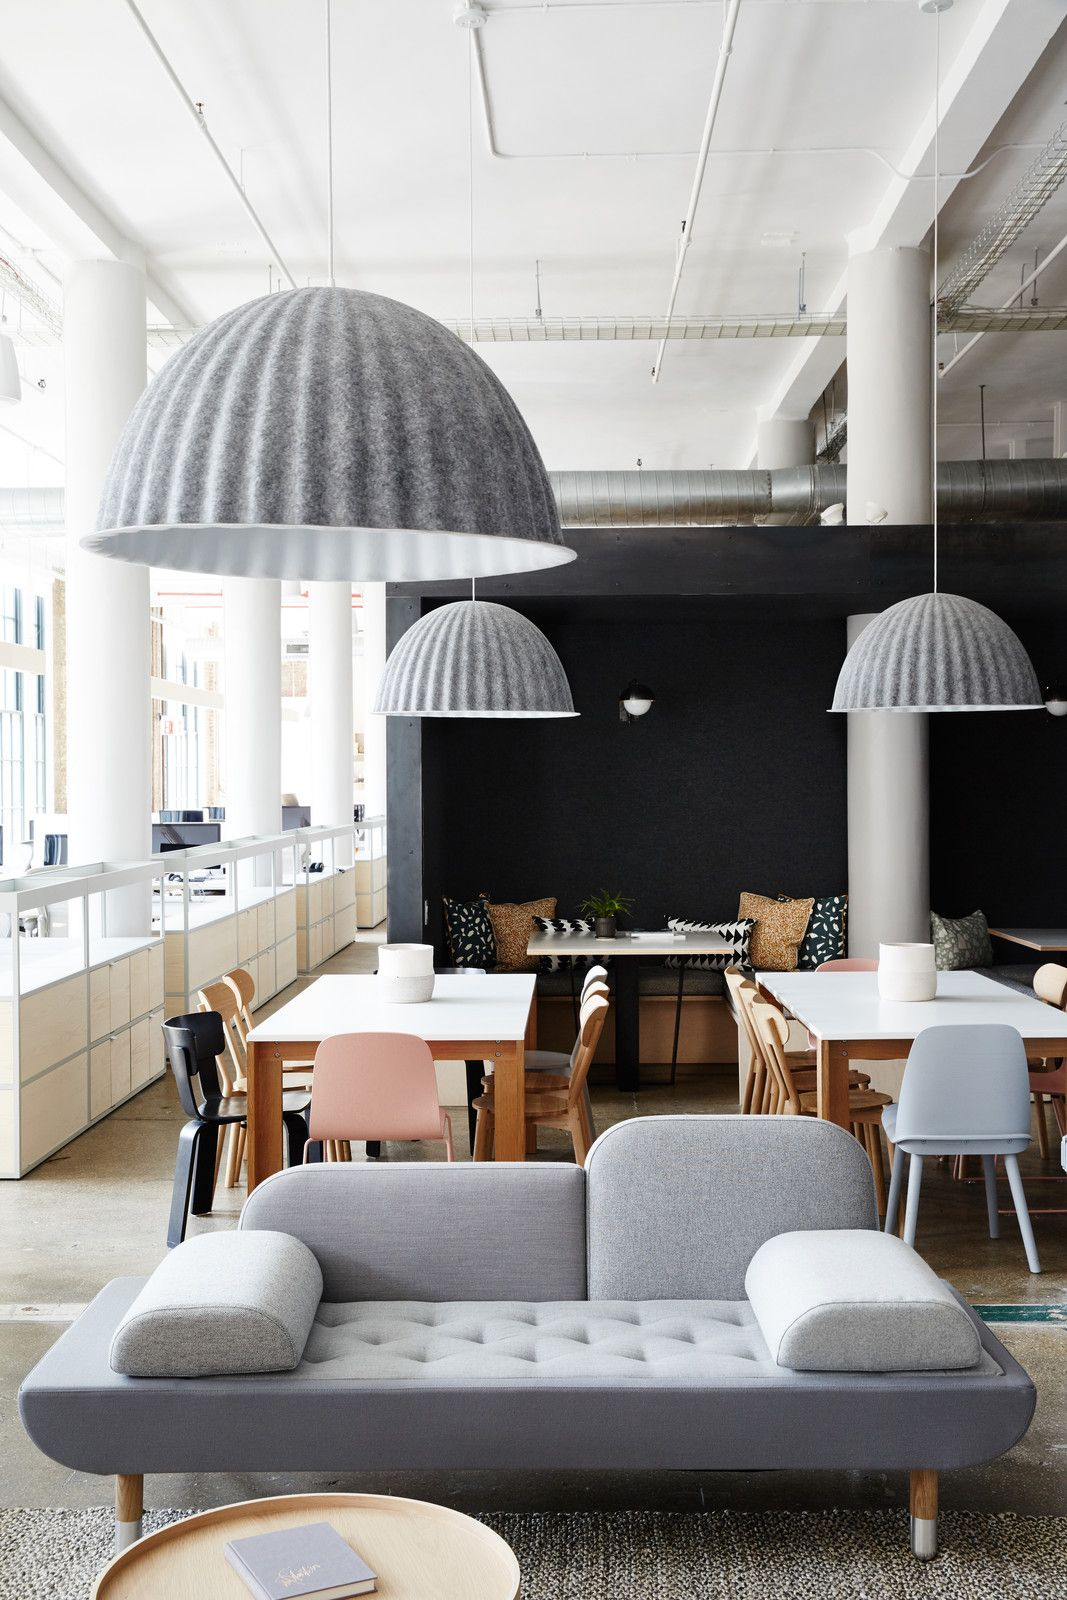 improving acoustics office open. Muuto Under The Bell Pendant Lights Are Made From Recycled Plastic Felt, Which Helps Absorb Noise And Improve Acoustics\u2014a Key Feature In Open Office. Improving Acoustics Office R